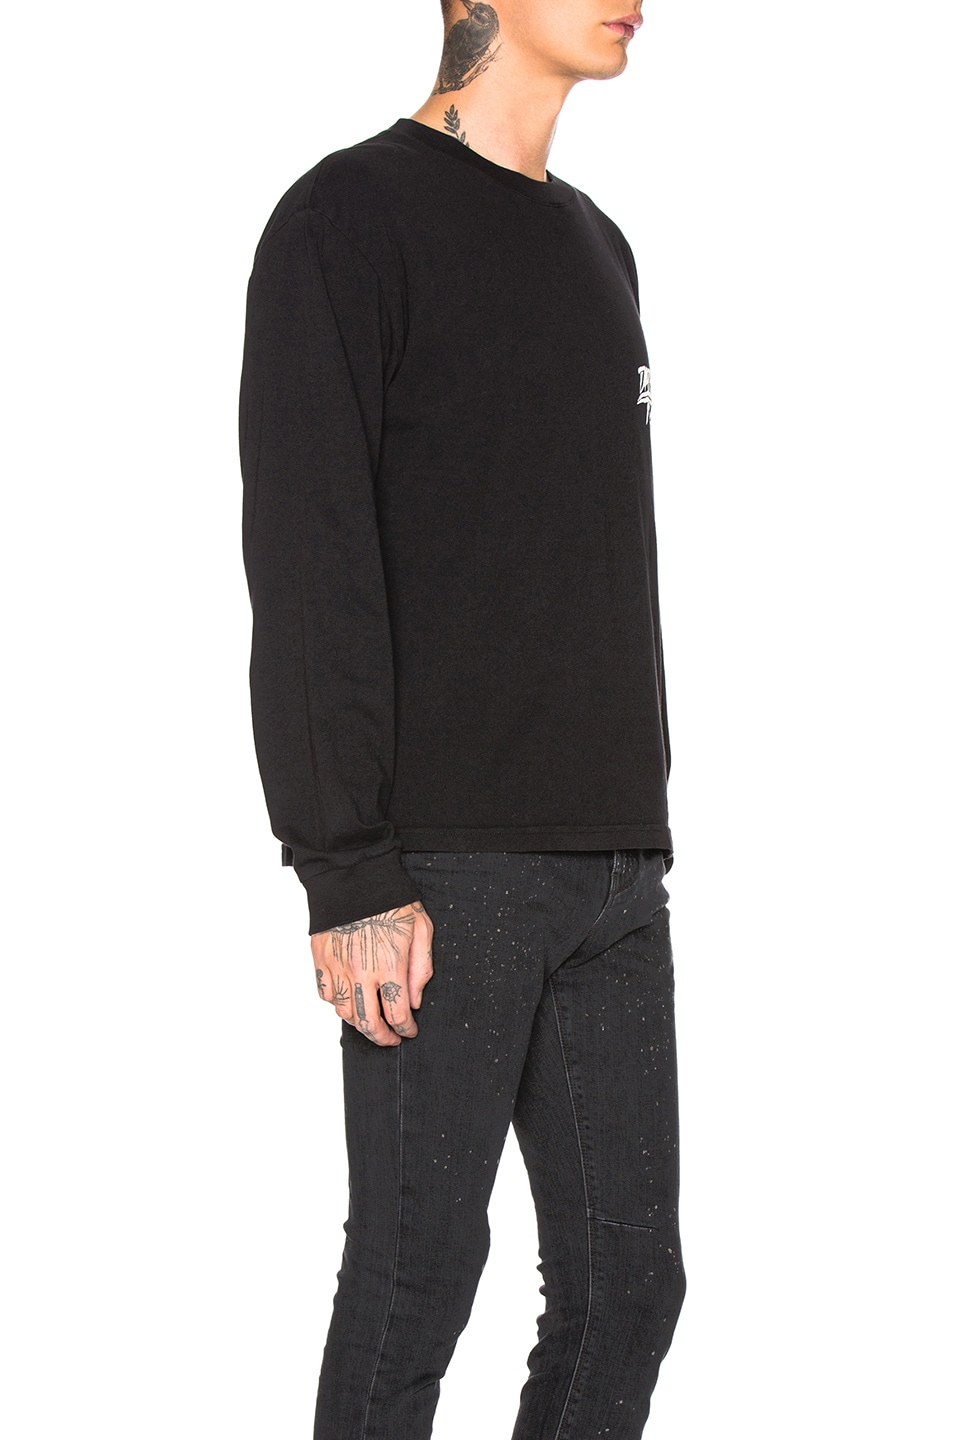 Image 3 of RtA Long Sleeve Graphic Tee in Black Crest